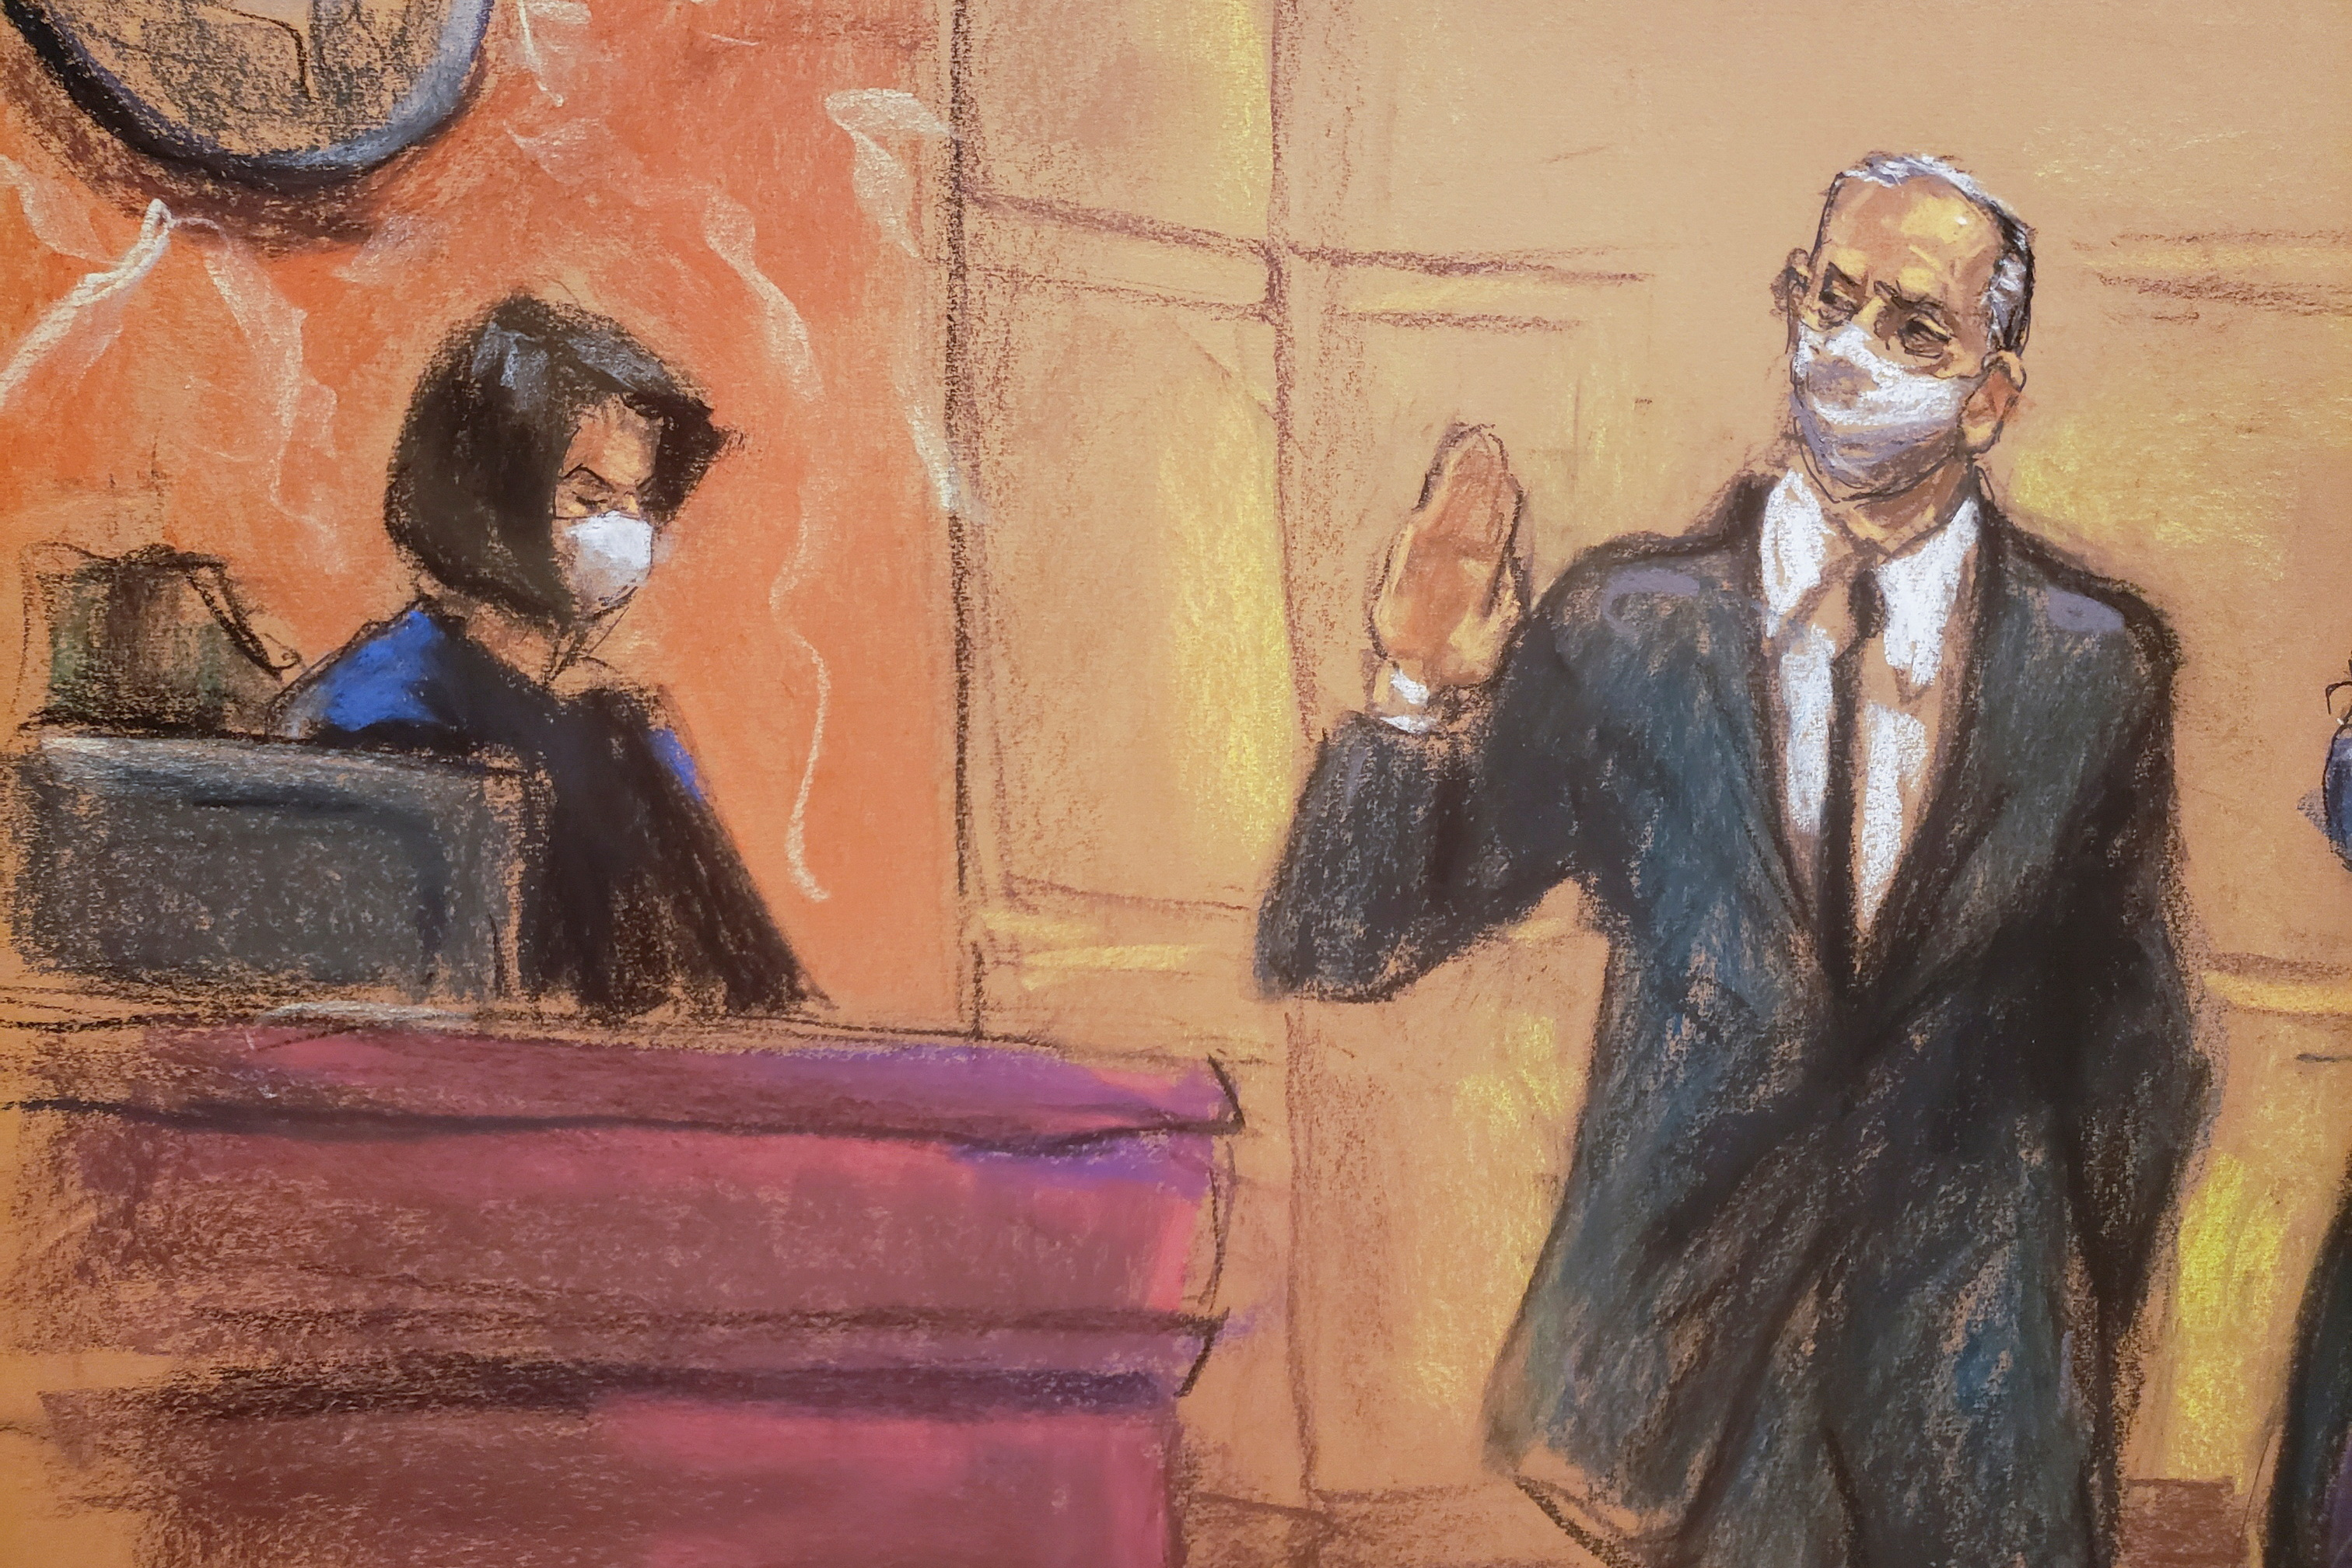 Mexico's former Defense Minister Salvador Cienfuegos takes the oath before Judge Carol Bagley Amon during a hearing to consider a U.S. government request to drop drug charges, in a courtroom sketch in the Brooklyn borough of New York City, U.S. November 18, 2020. REUTERS/Jane Rosenberg